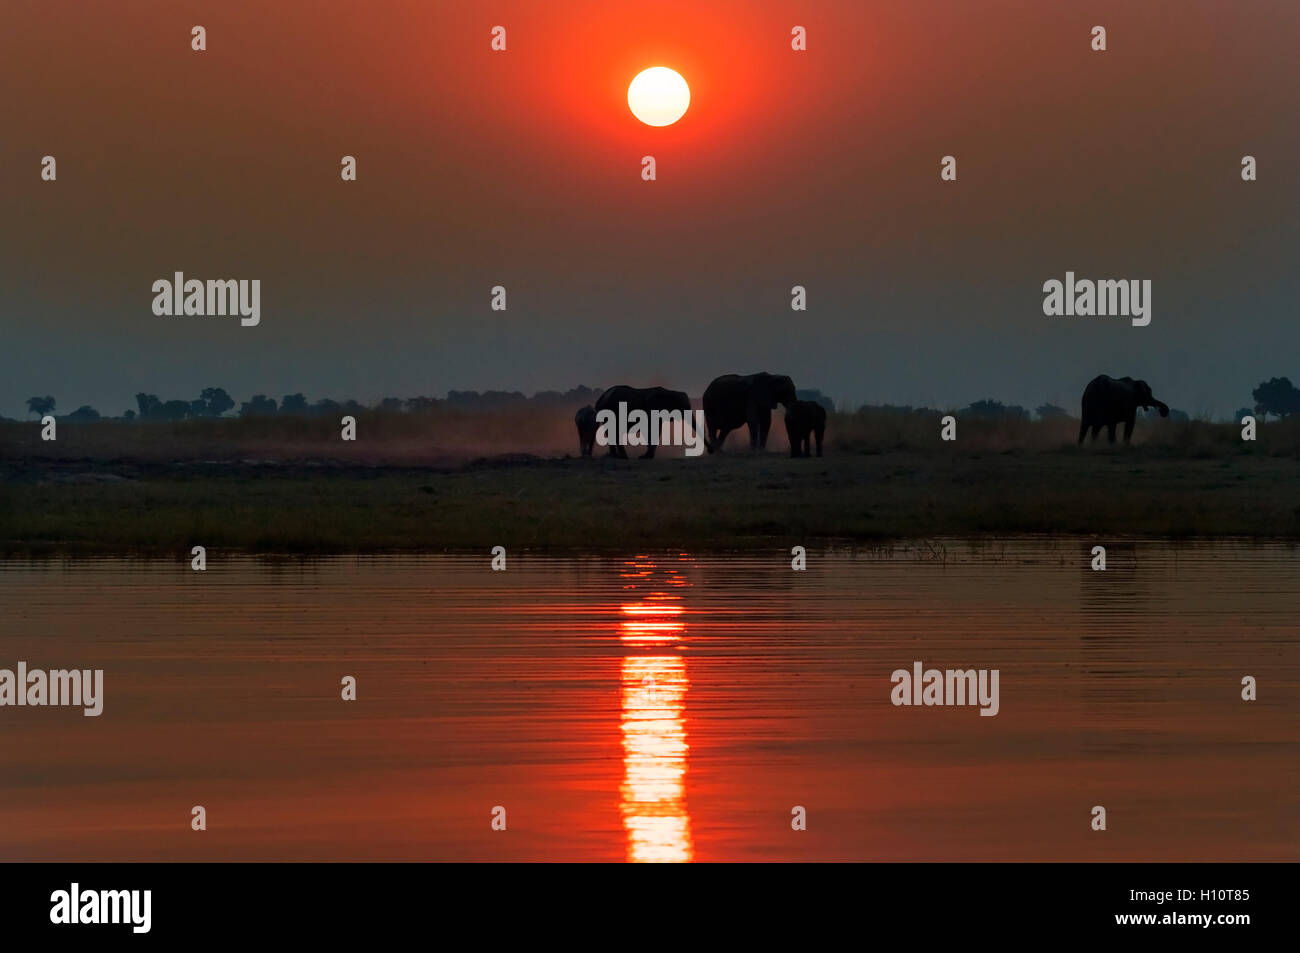 Silhouette of a herd of elephants at sunset in the Chobe National Park in Botswana; - Stock Image